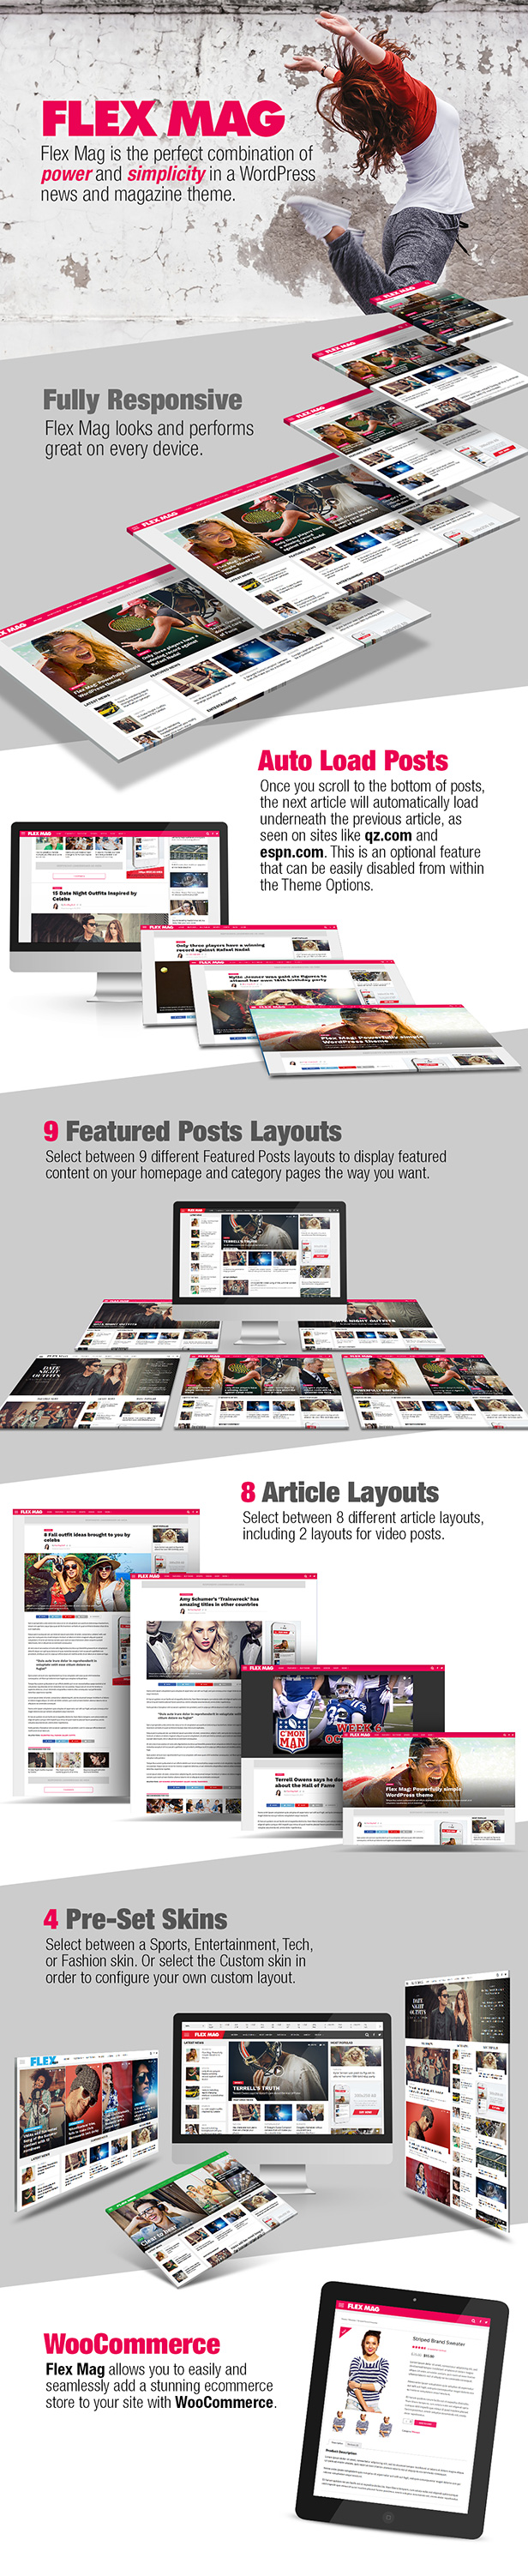 flex mag mockup - Flex Mag - Responsive WordPress News Theme